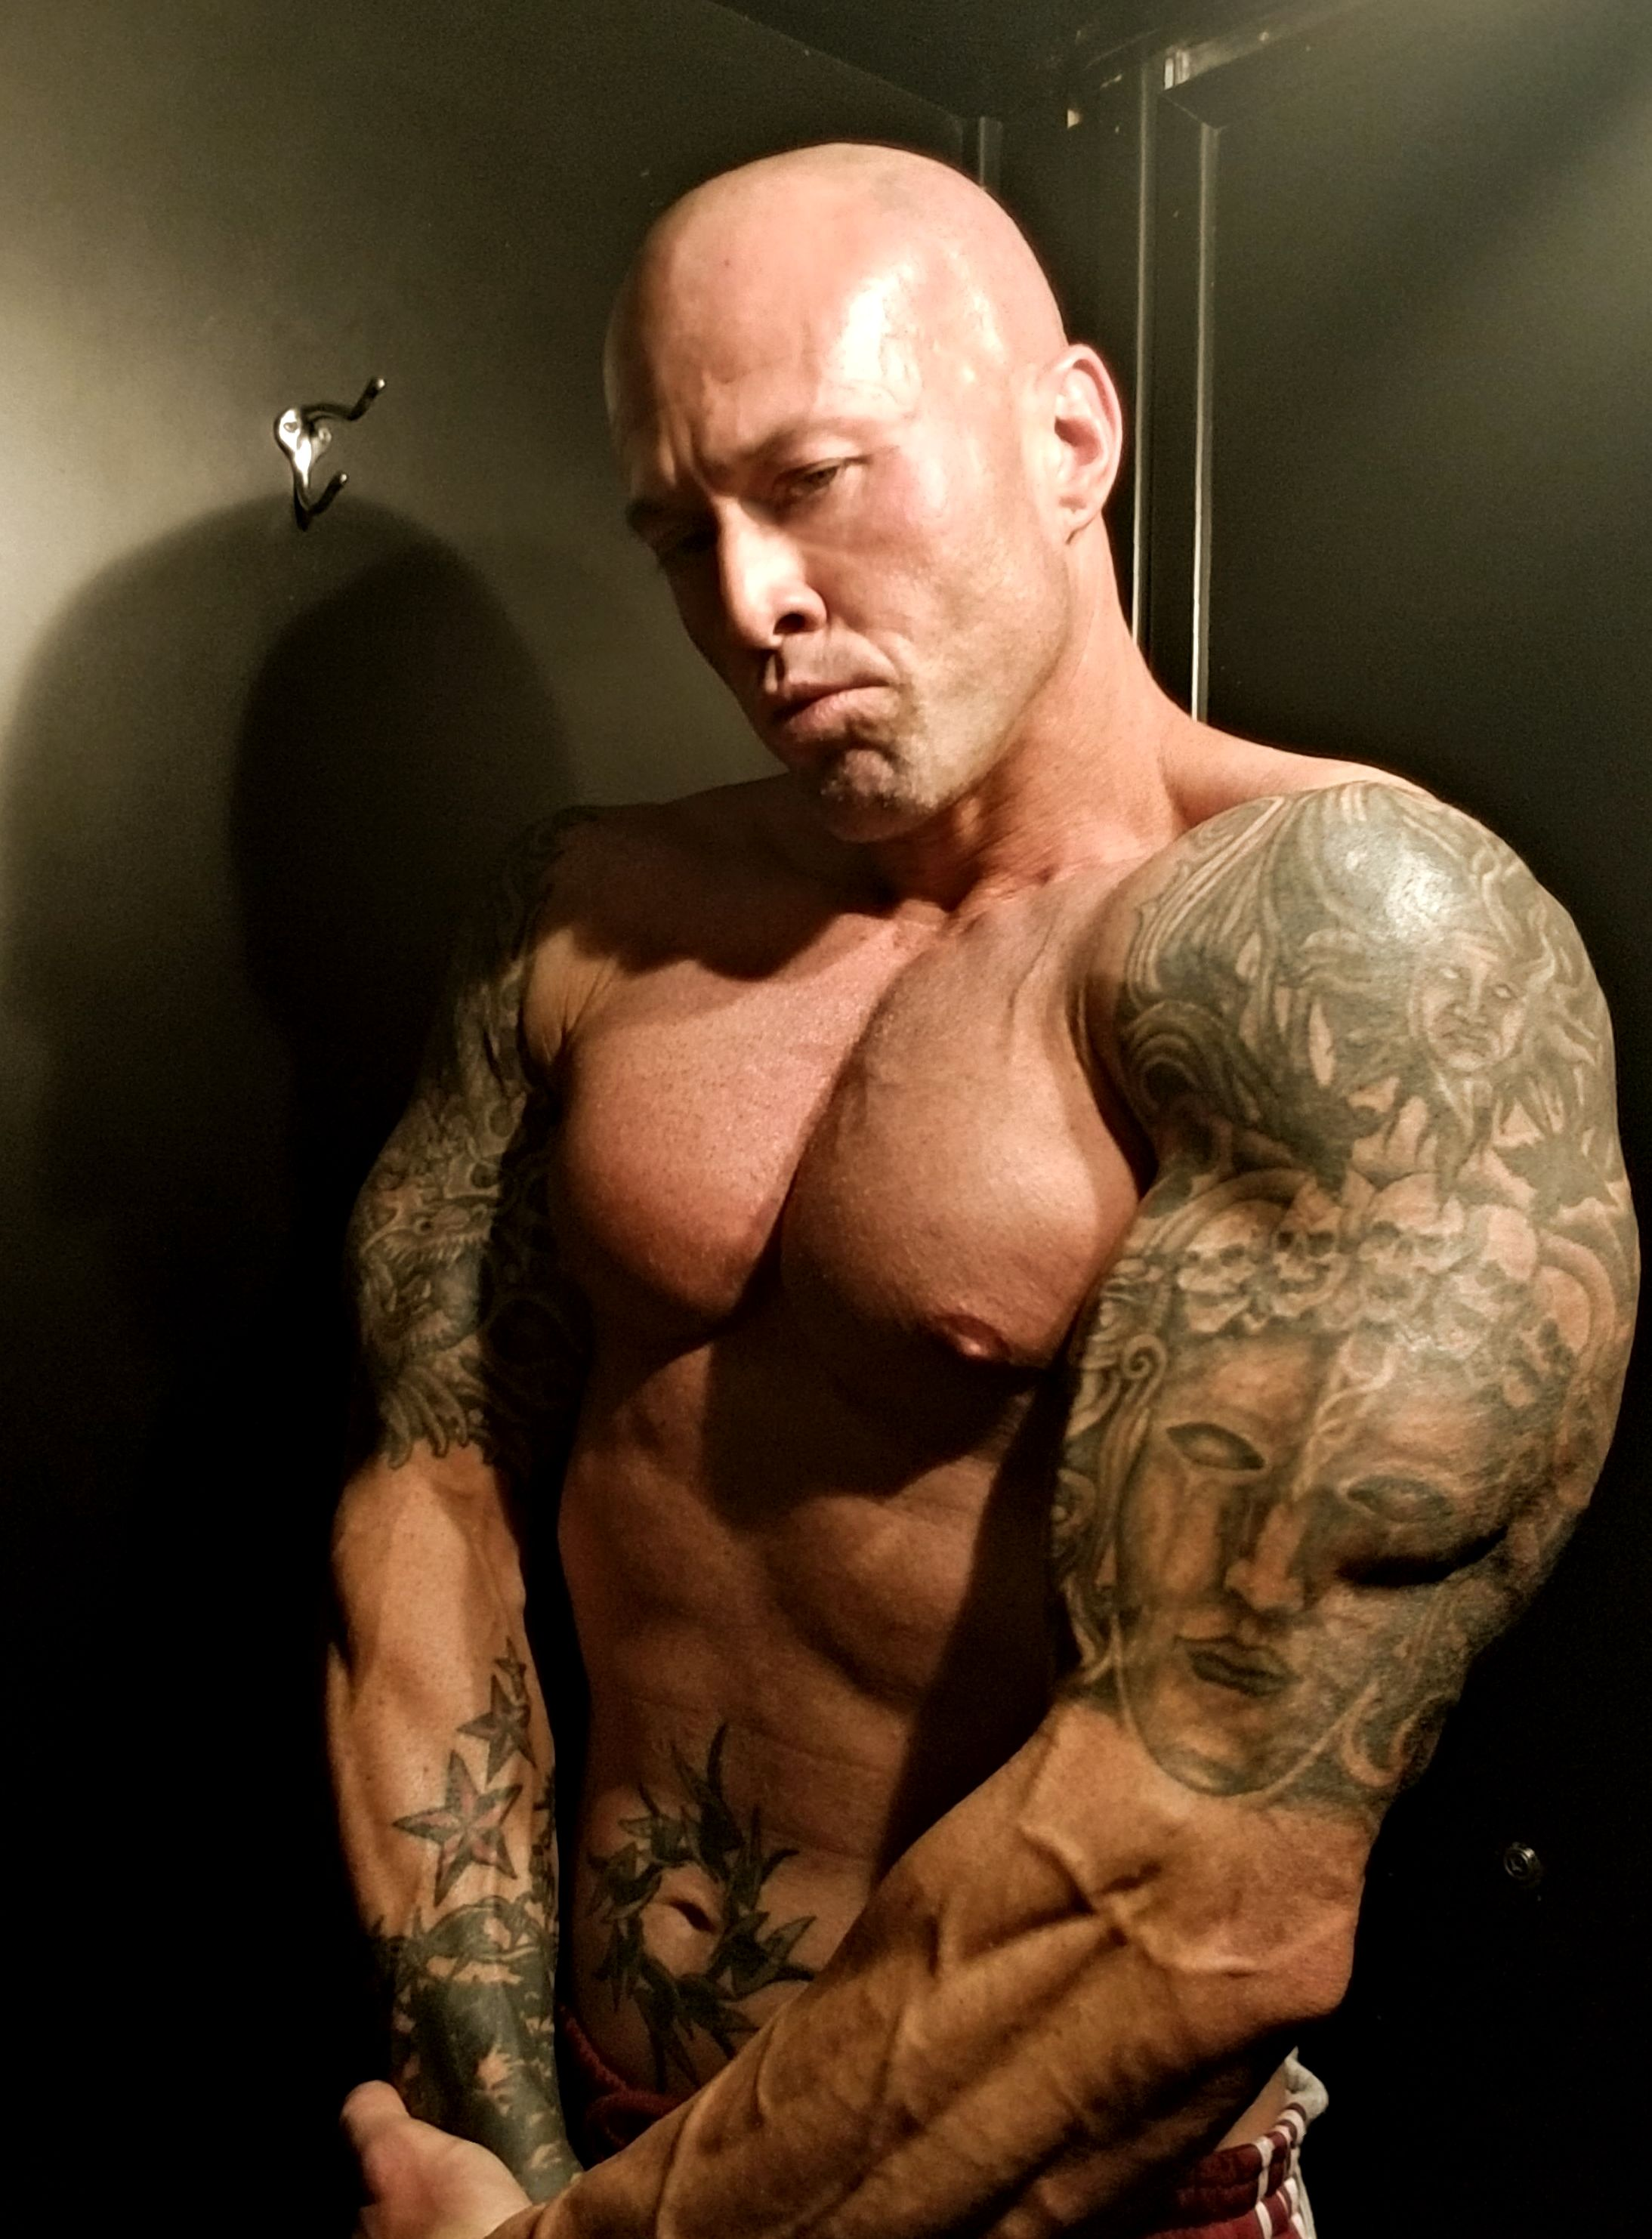 Model & Actor John Quinlan Physique Post Workout 1-20-2018 #JohnQuinlan